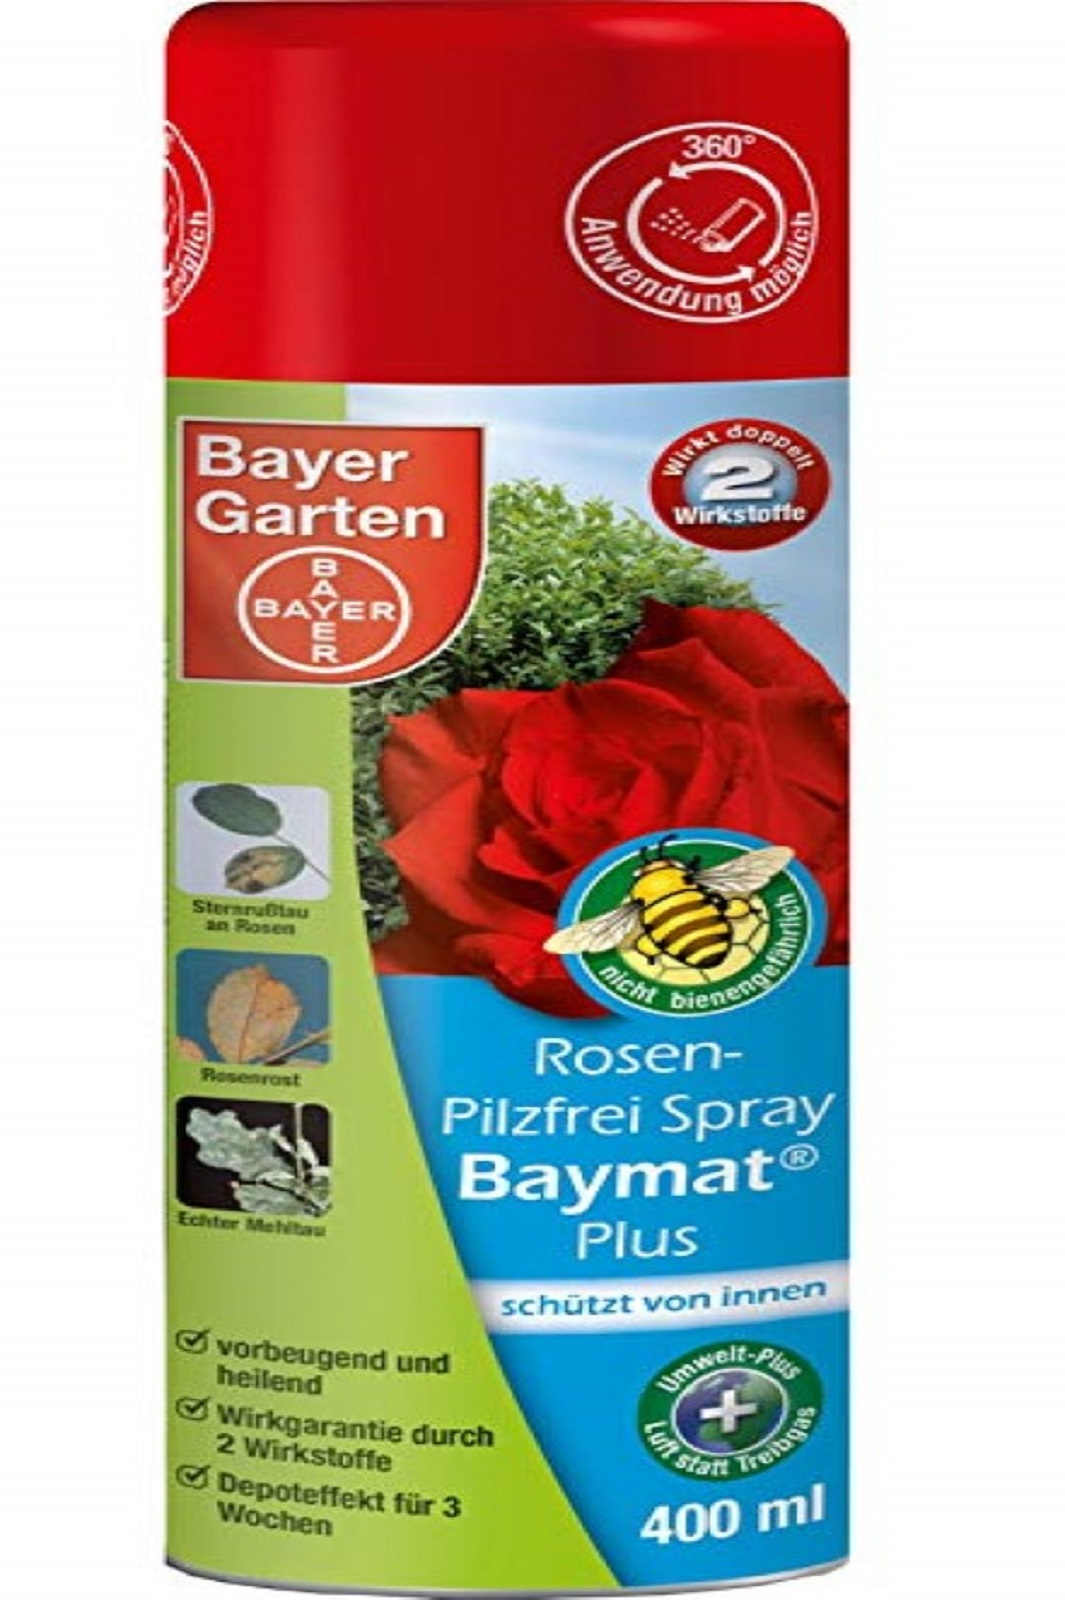 Bayer Rosen Pilzfrei Spray Baymat Plus 400 ml